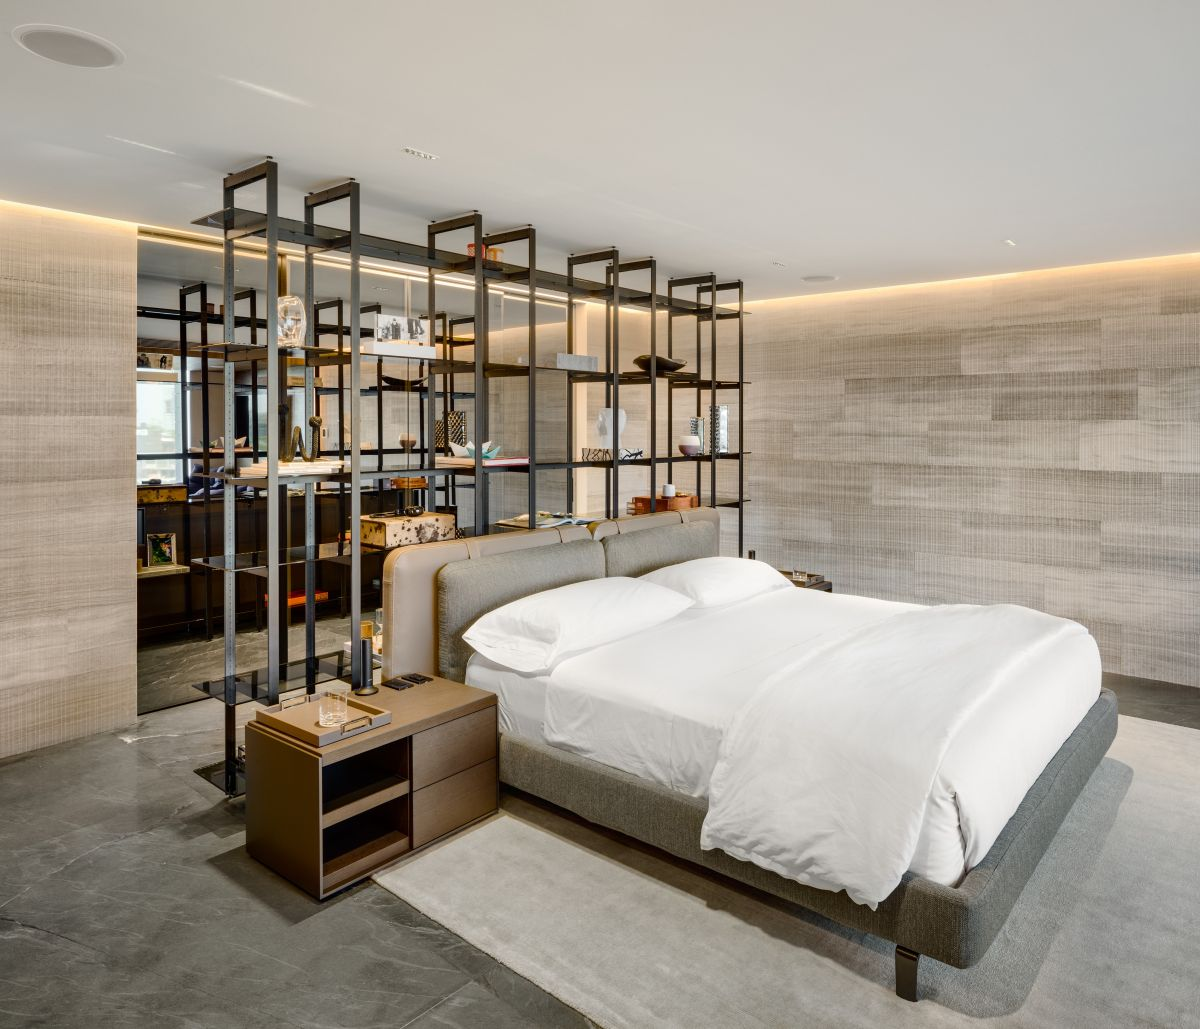 1561625248 897 modern bedroom shelves that really bring the room together - Modern Bedroom Shelves That Really Bring The Room Together